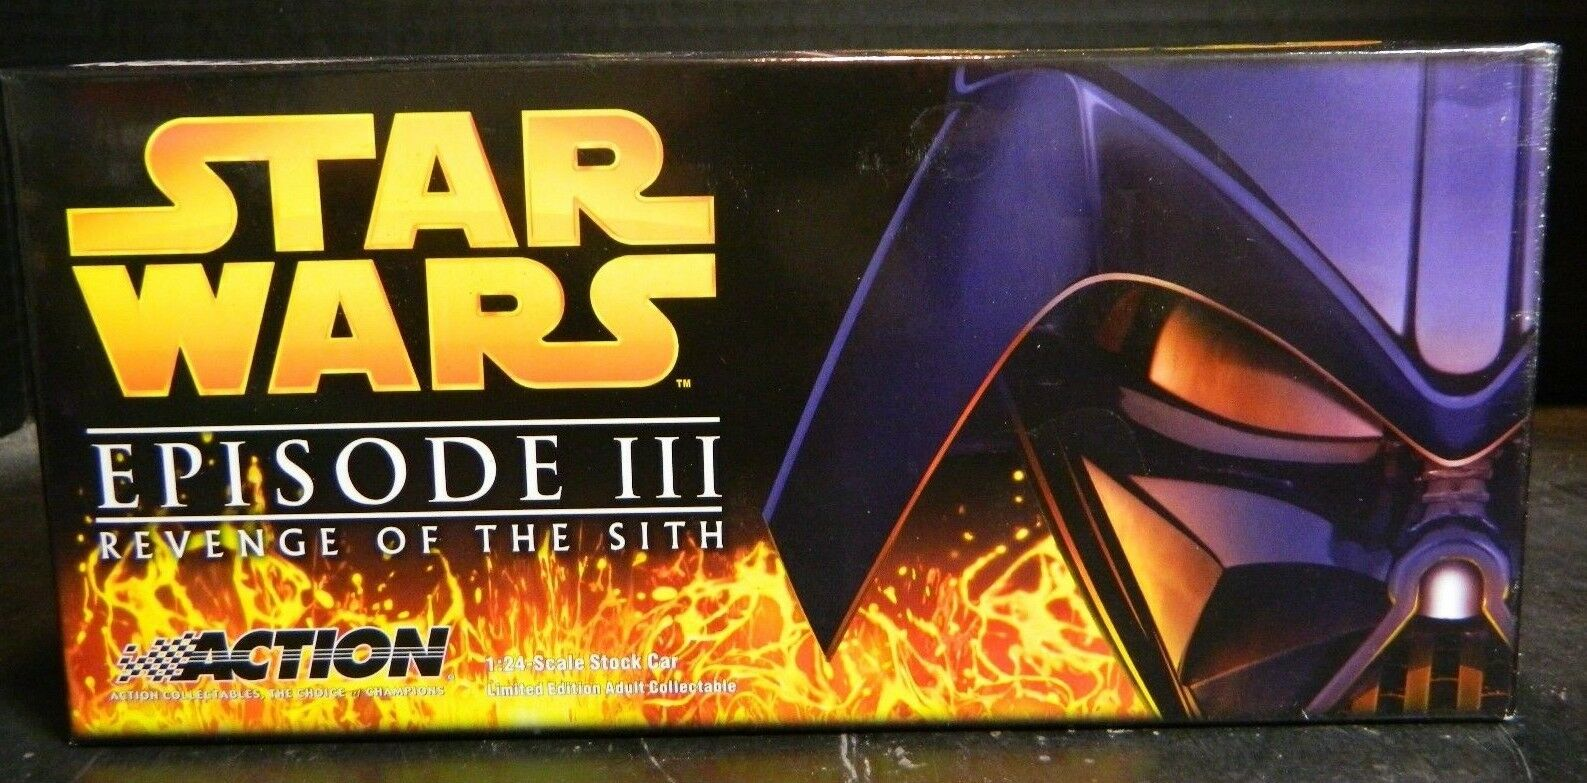 Diecast Star Wars Episode III 2005 Monte Carlo Action Collectibles New In Box